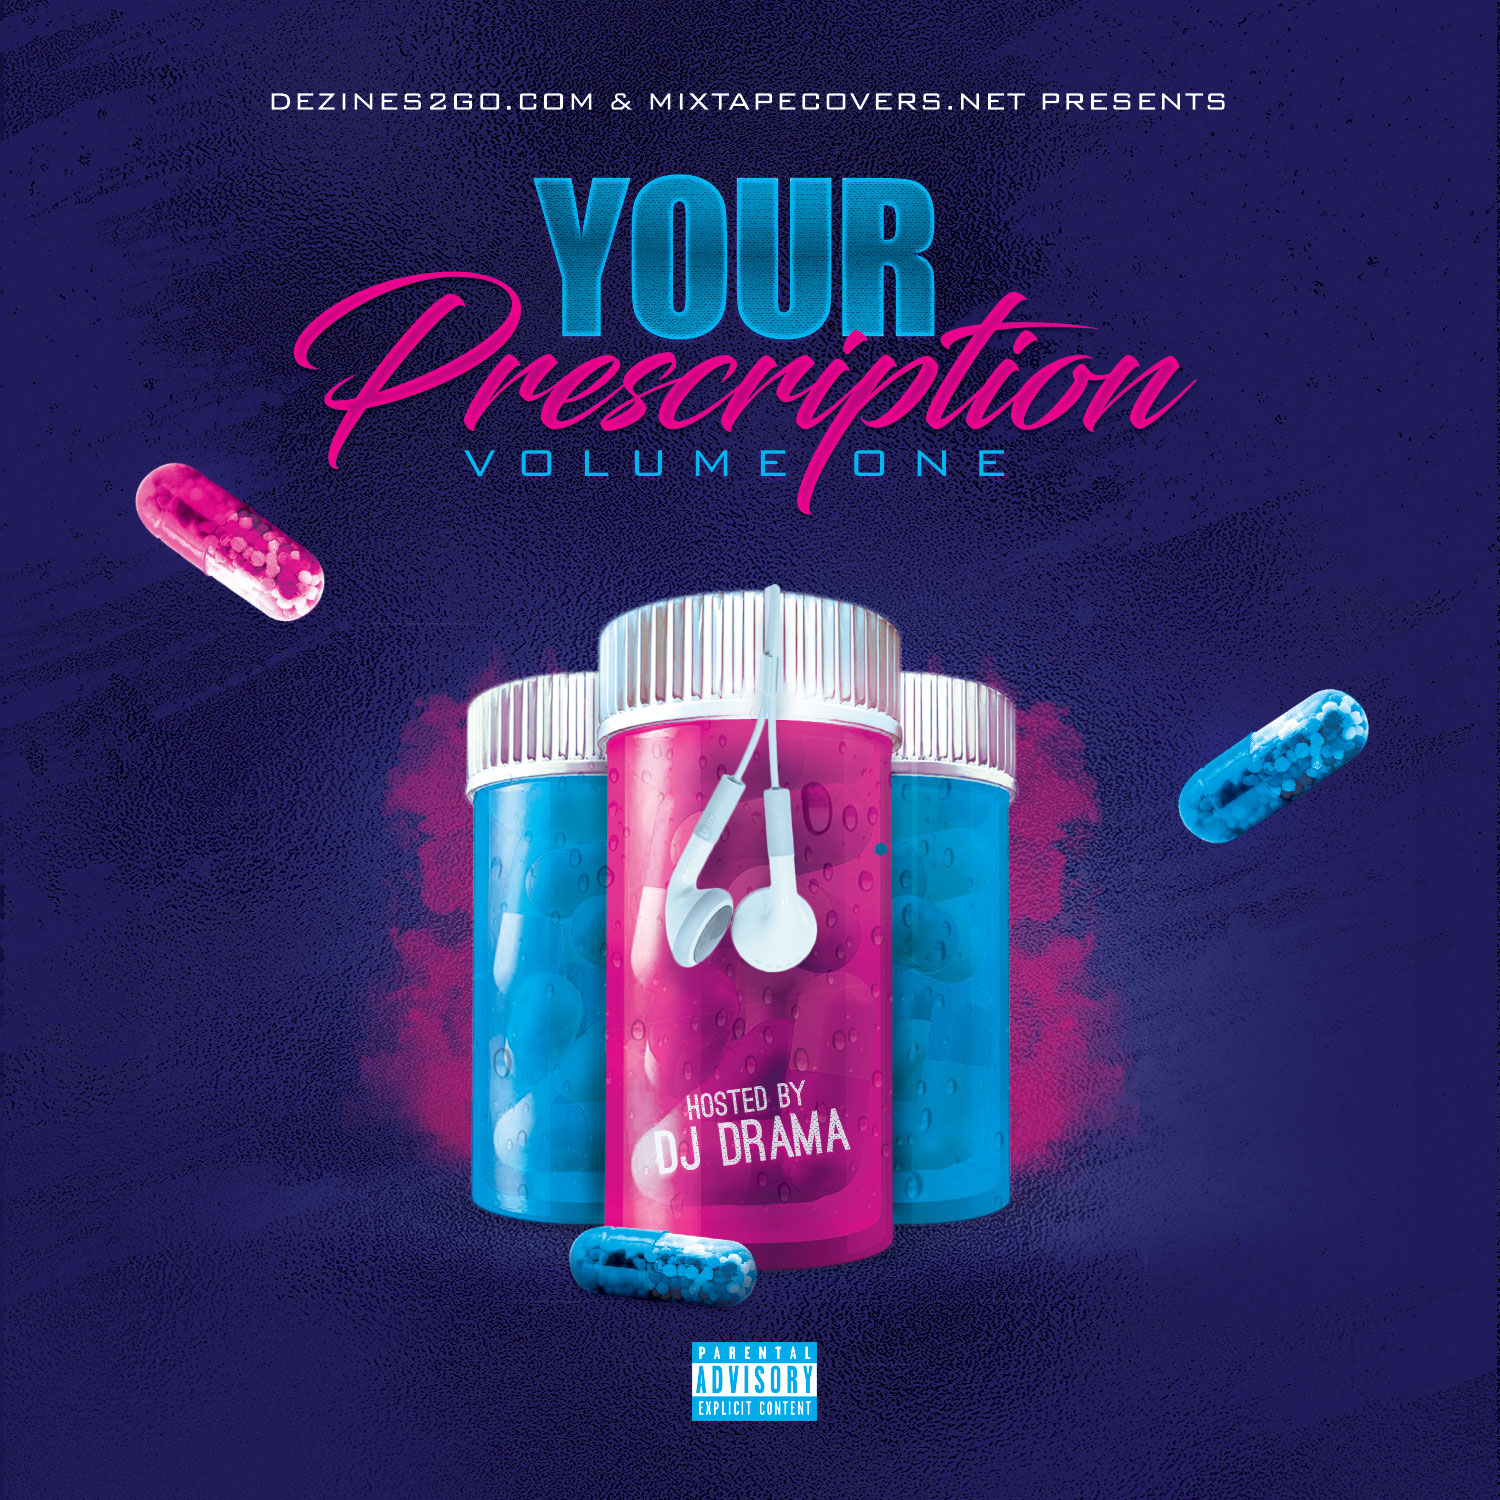 Your Rx Mixtape Cover Template